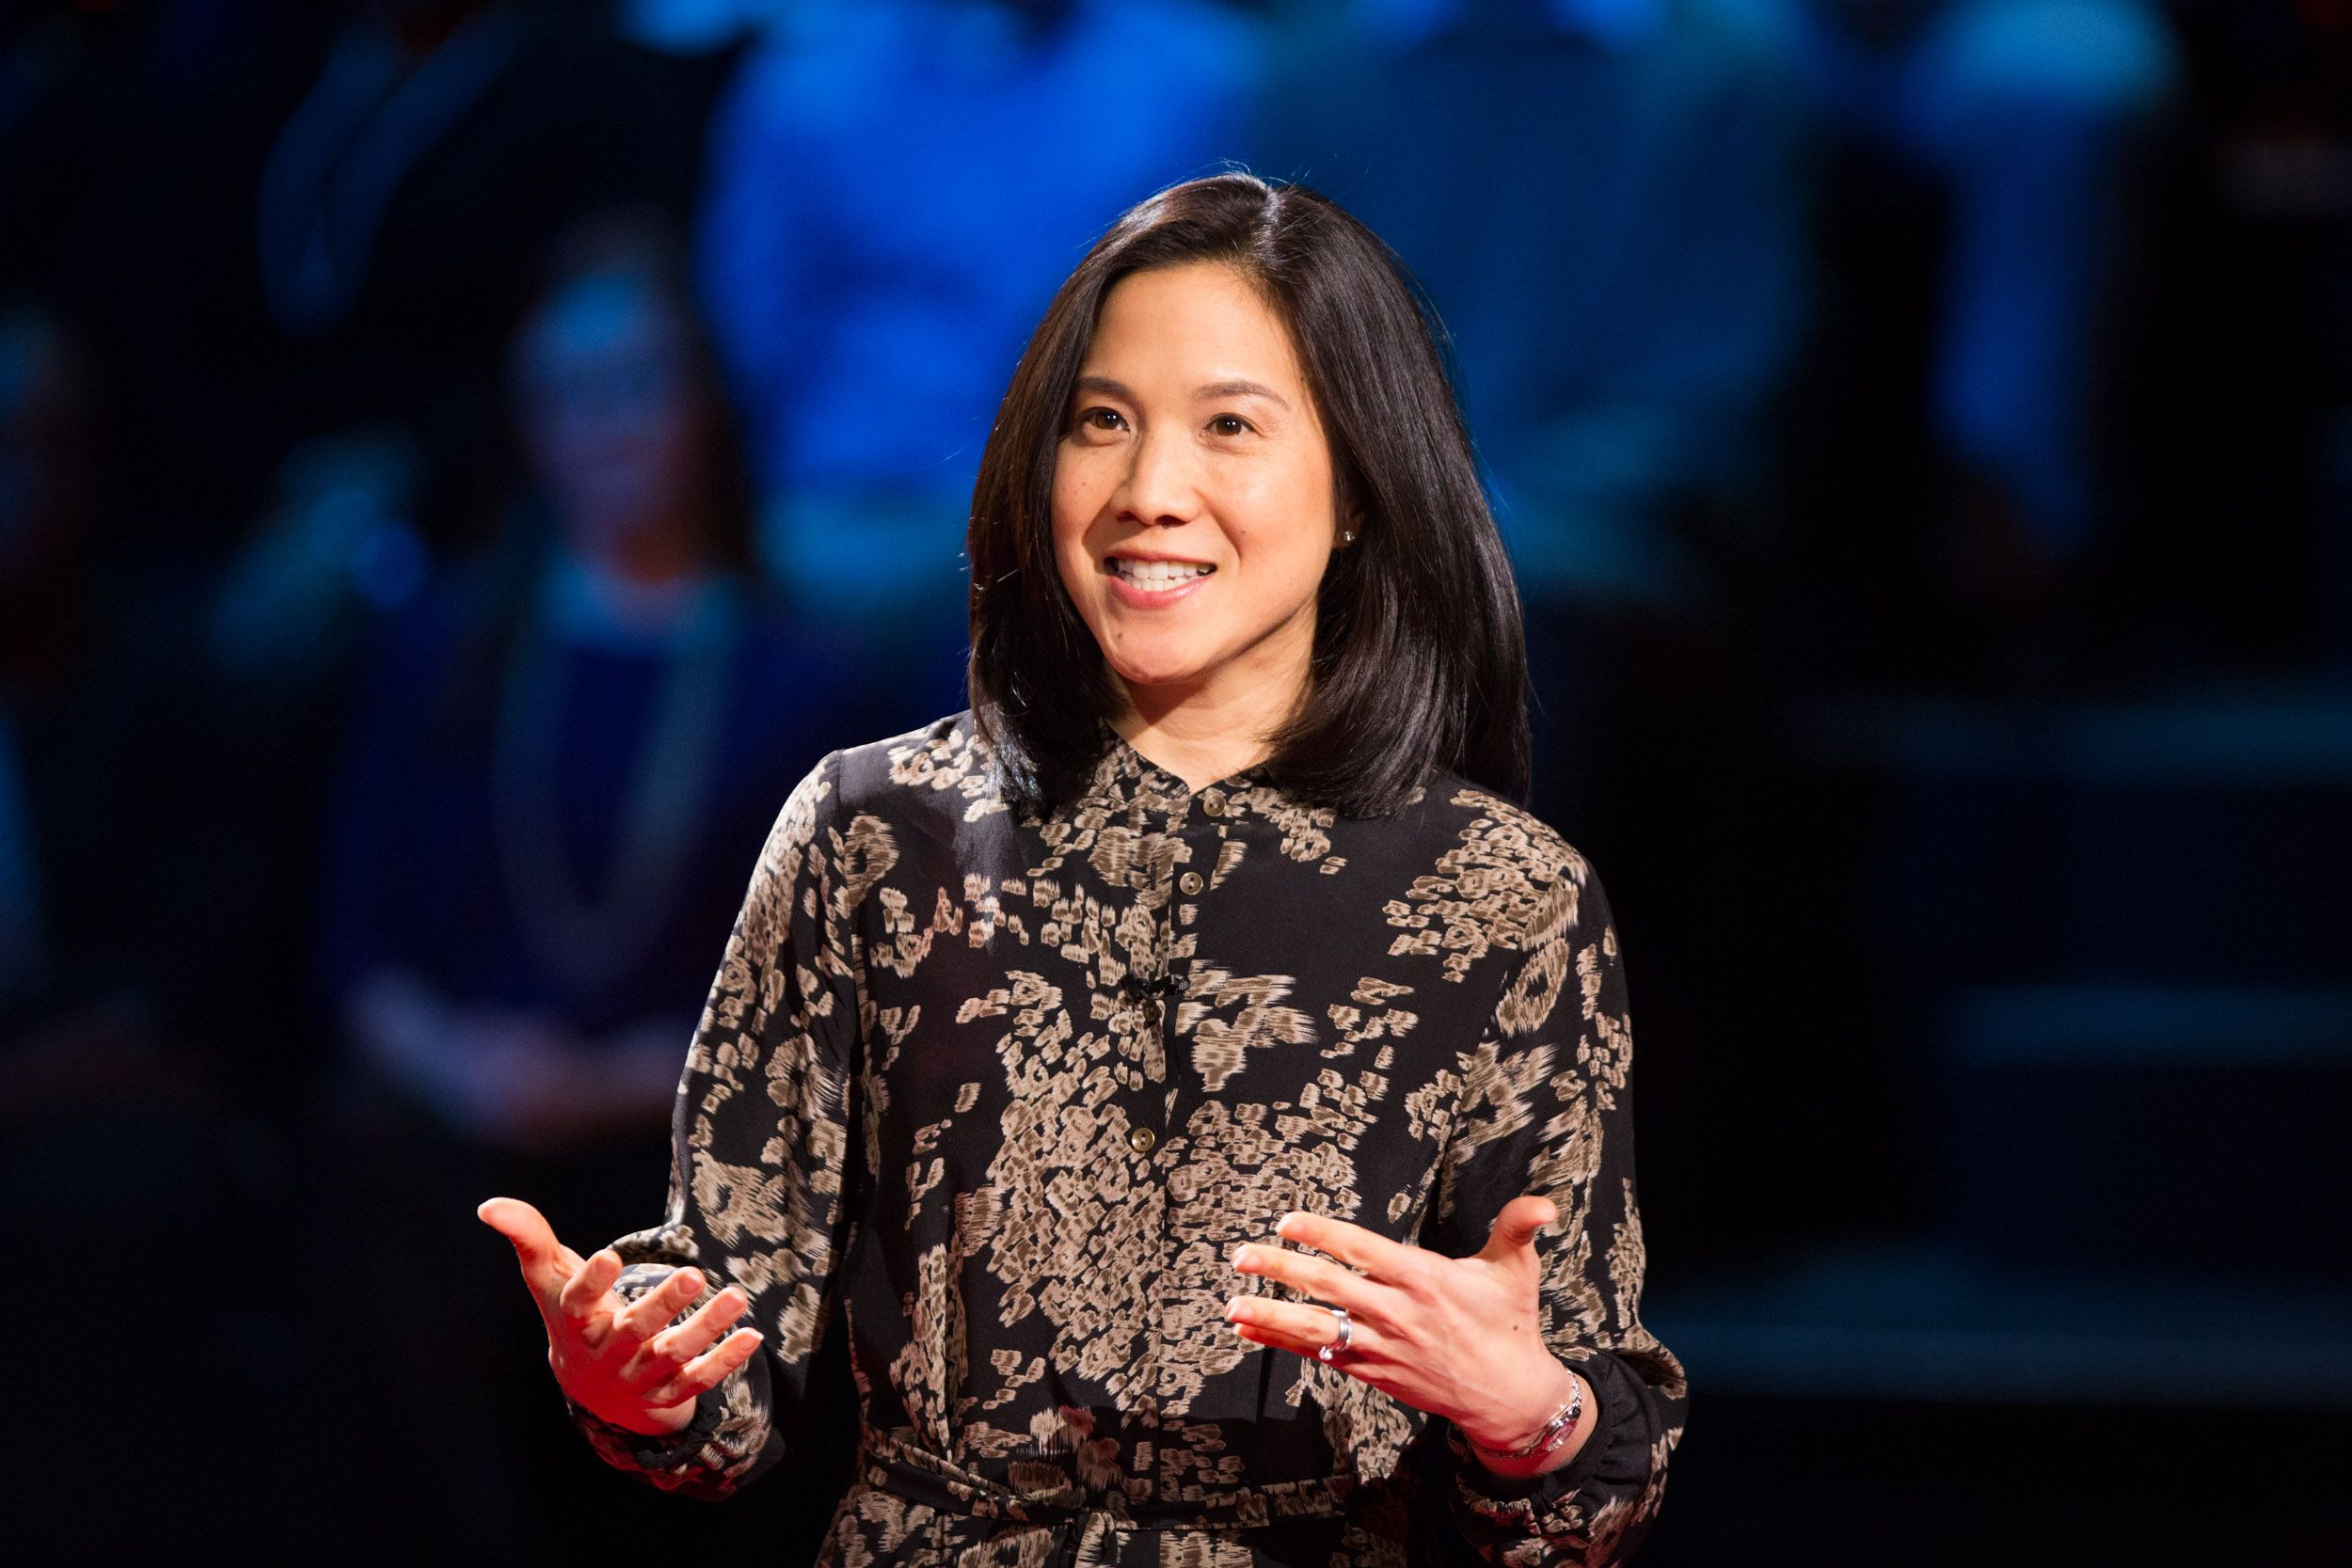 ted speaker - Google Search